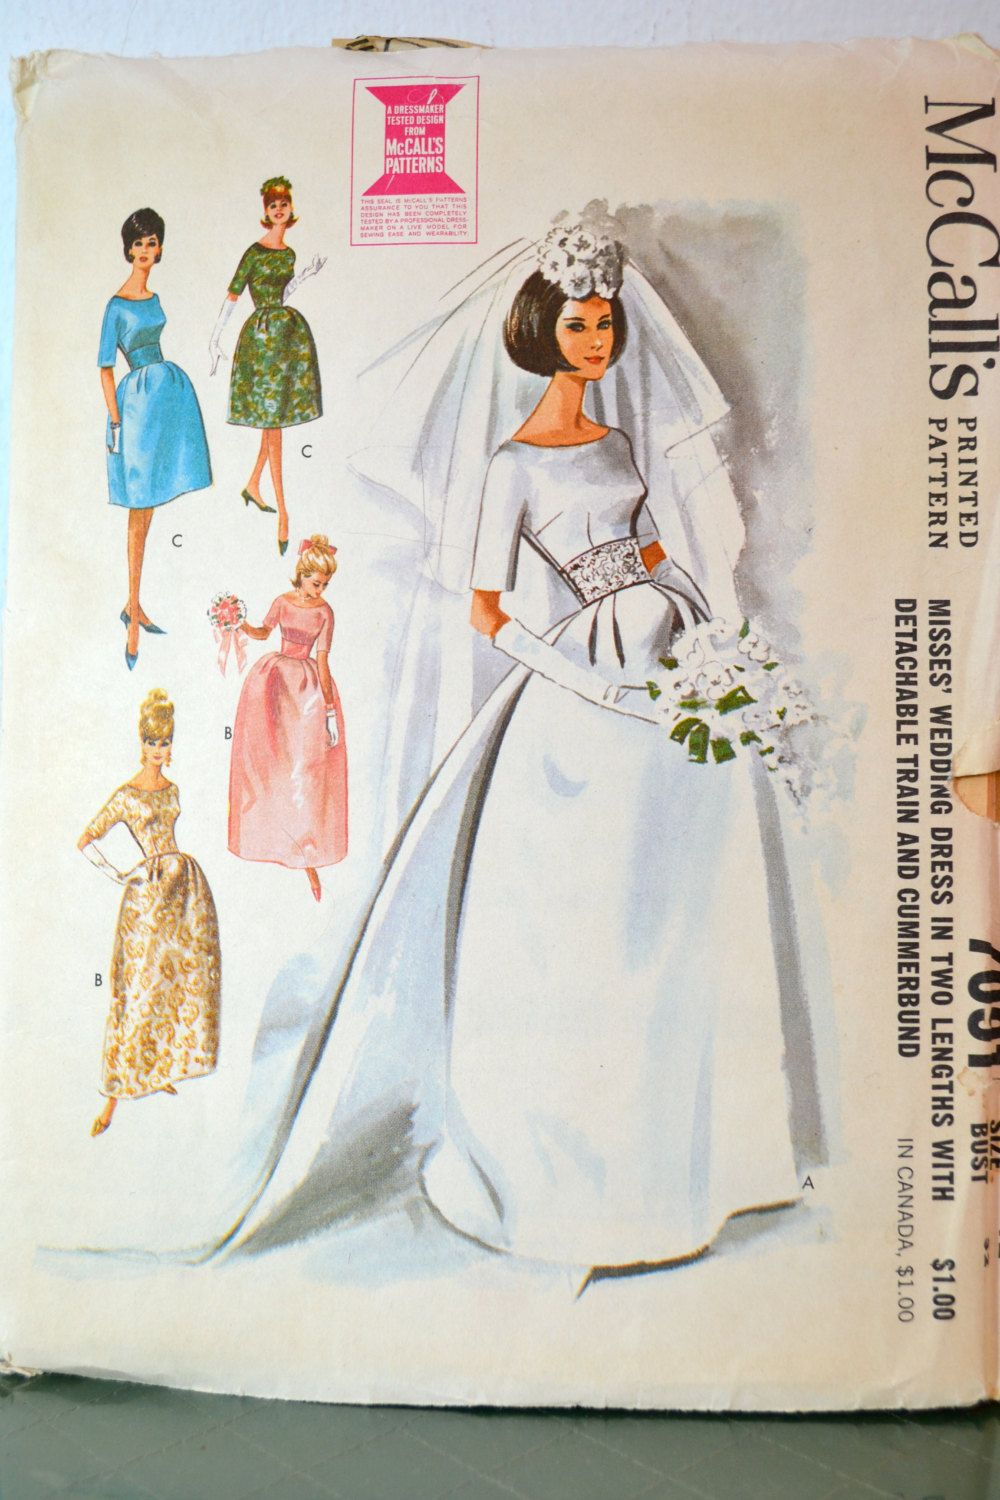 1960s vintage mccall 39 s pattern 7091 misses by for Mccall wedding dress patterns